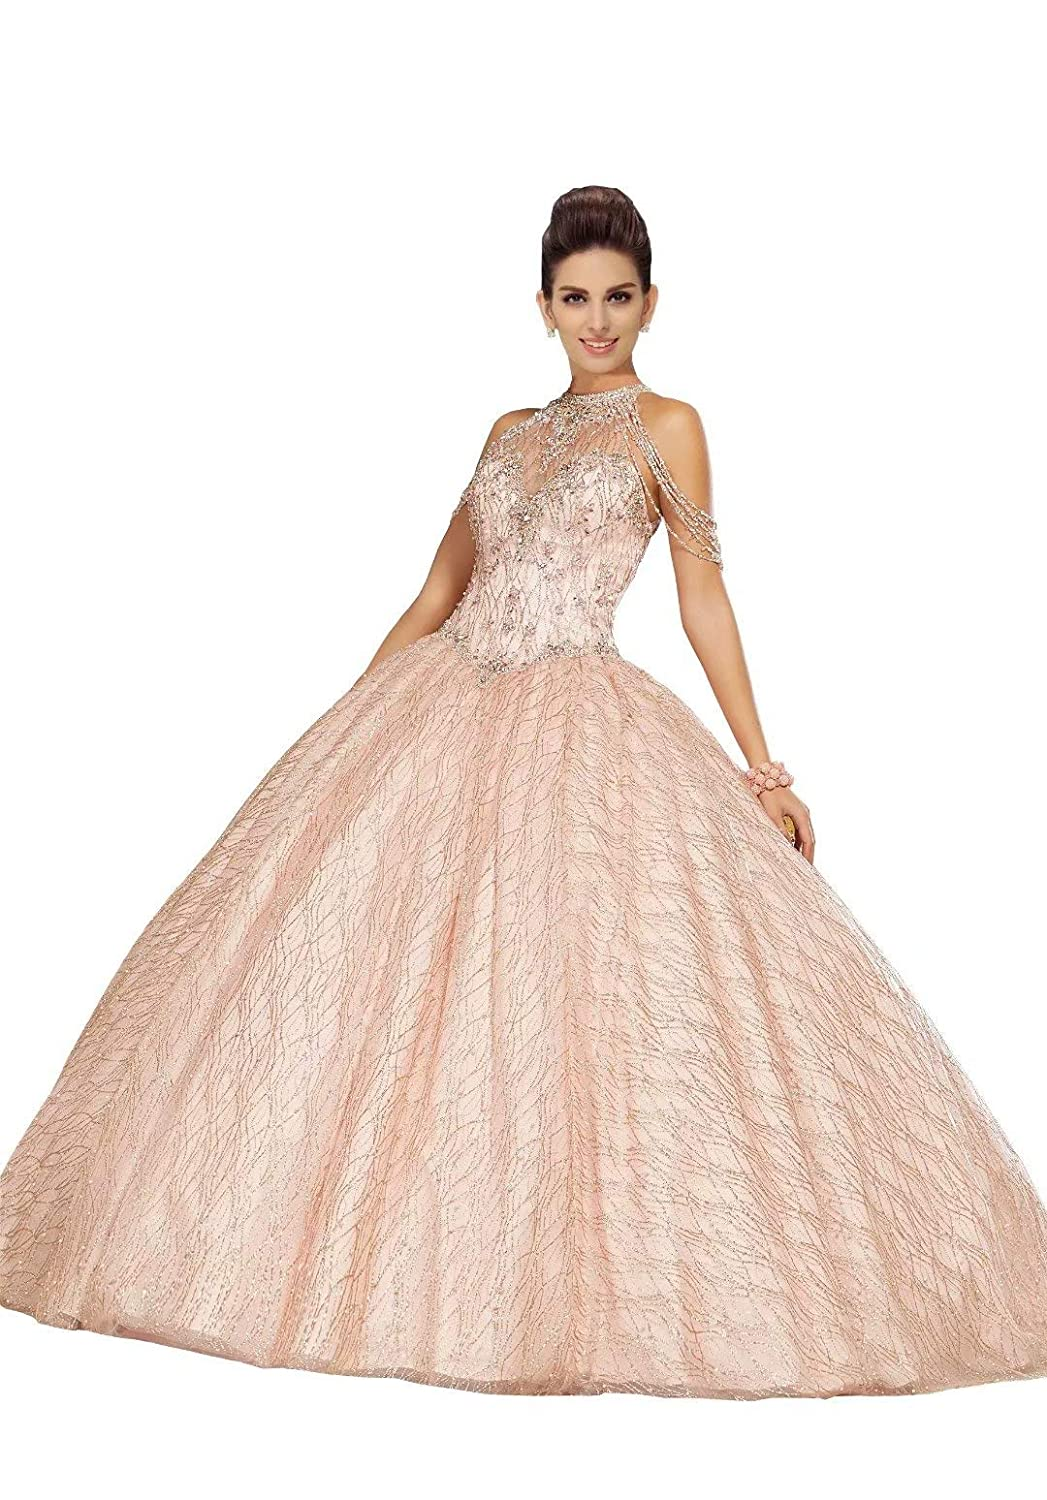 7494061f72 High Halter Off The Shoulder Quinceanera Dresses 2019 Pearls Beading  Crystal Lace-up Ball Gowns Prom Dress at Amazon Women s Clothing store